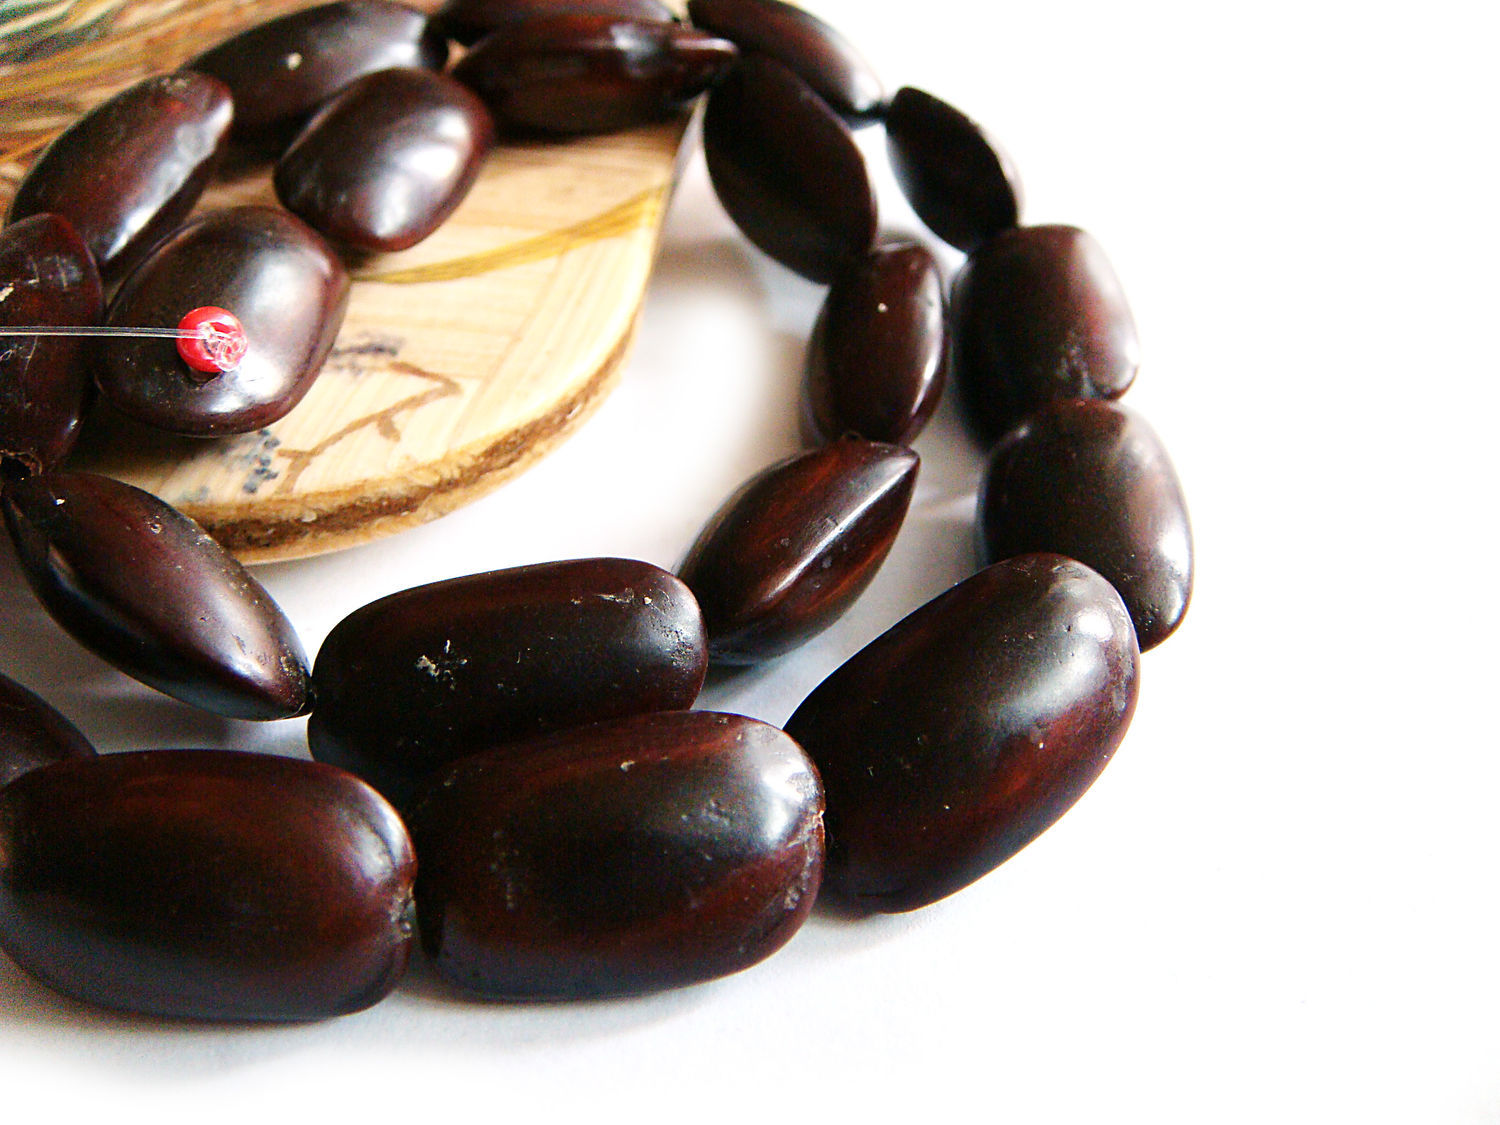 Beads the Seeds of the tree Ipil 20h12mm, Beads1, Bryansk,  Фото №1